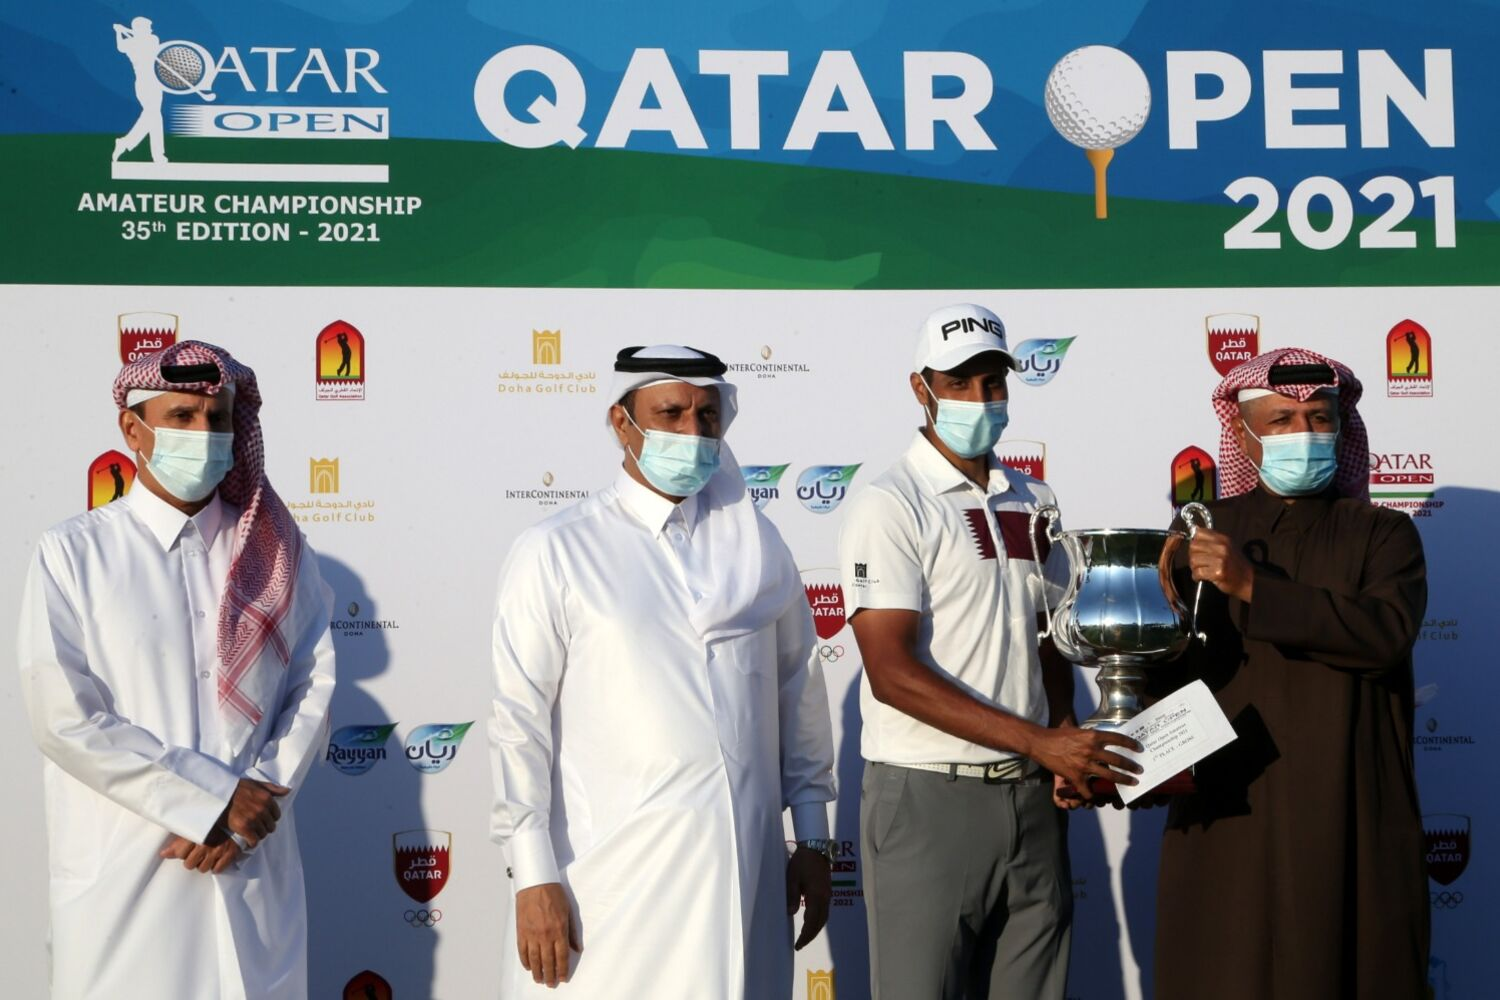 Al Shahrani becomes second Qatari to claim Qatar Open in 35 years